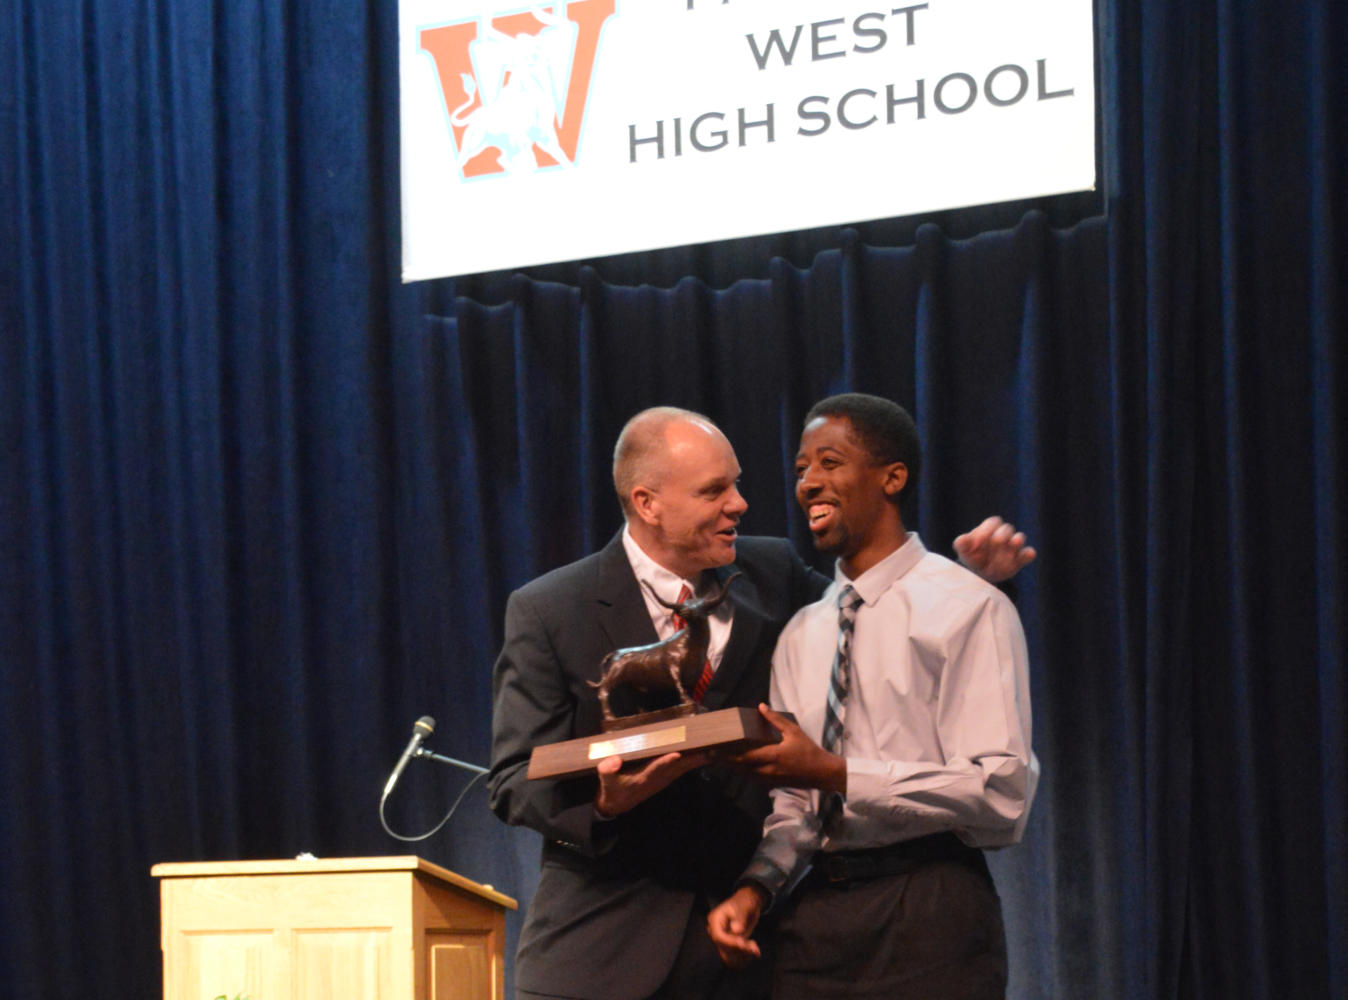 Principal Jeremy Mitchell awards senior Nehemiah Colyer the 2017 Founders Award recipient. The Founder's Award is given to a student who exemplifies what West students stand for: good character, academics, school spirit and is the highest school honor.